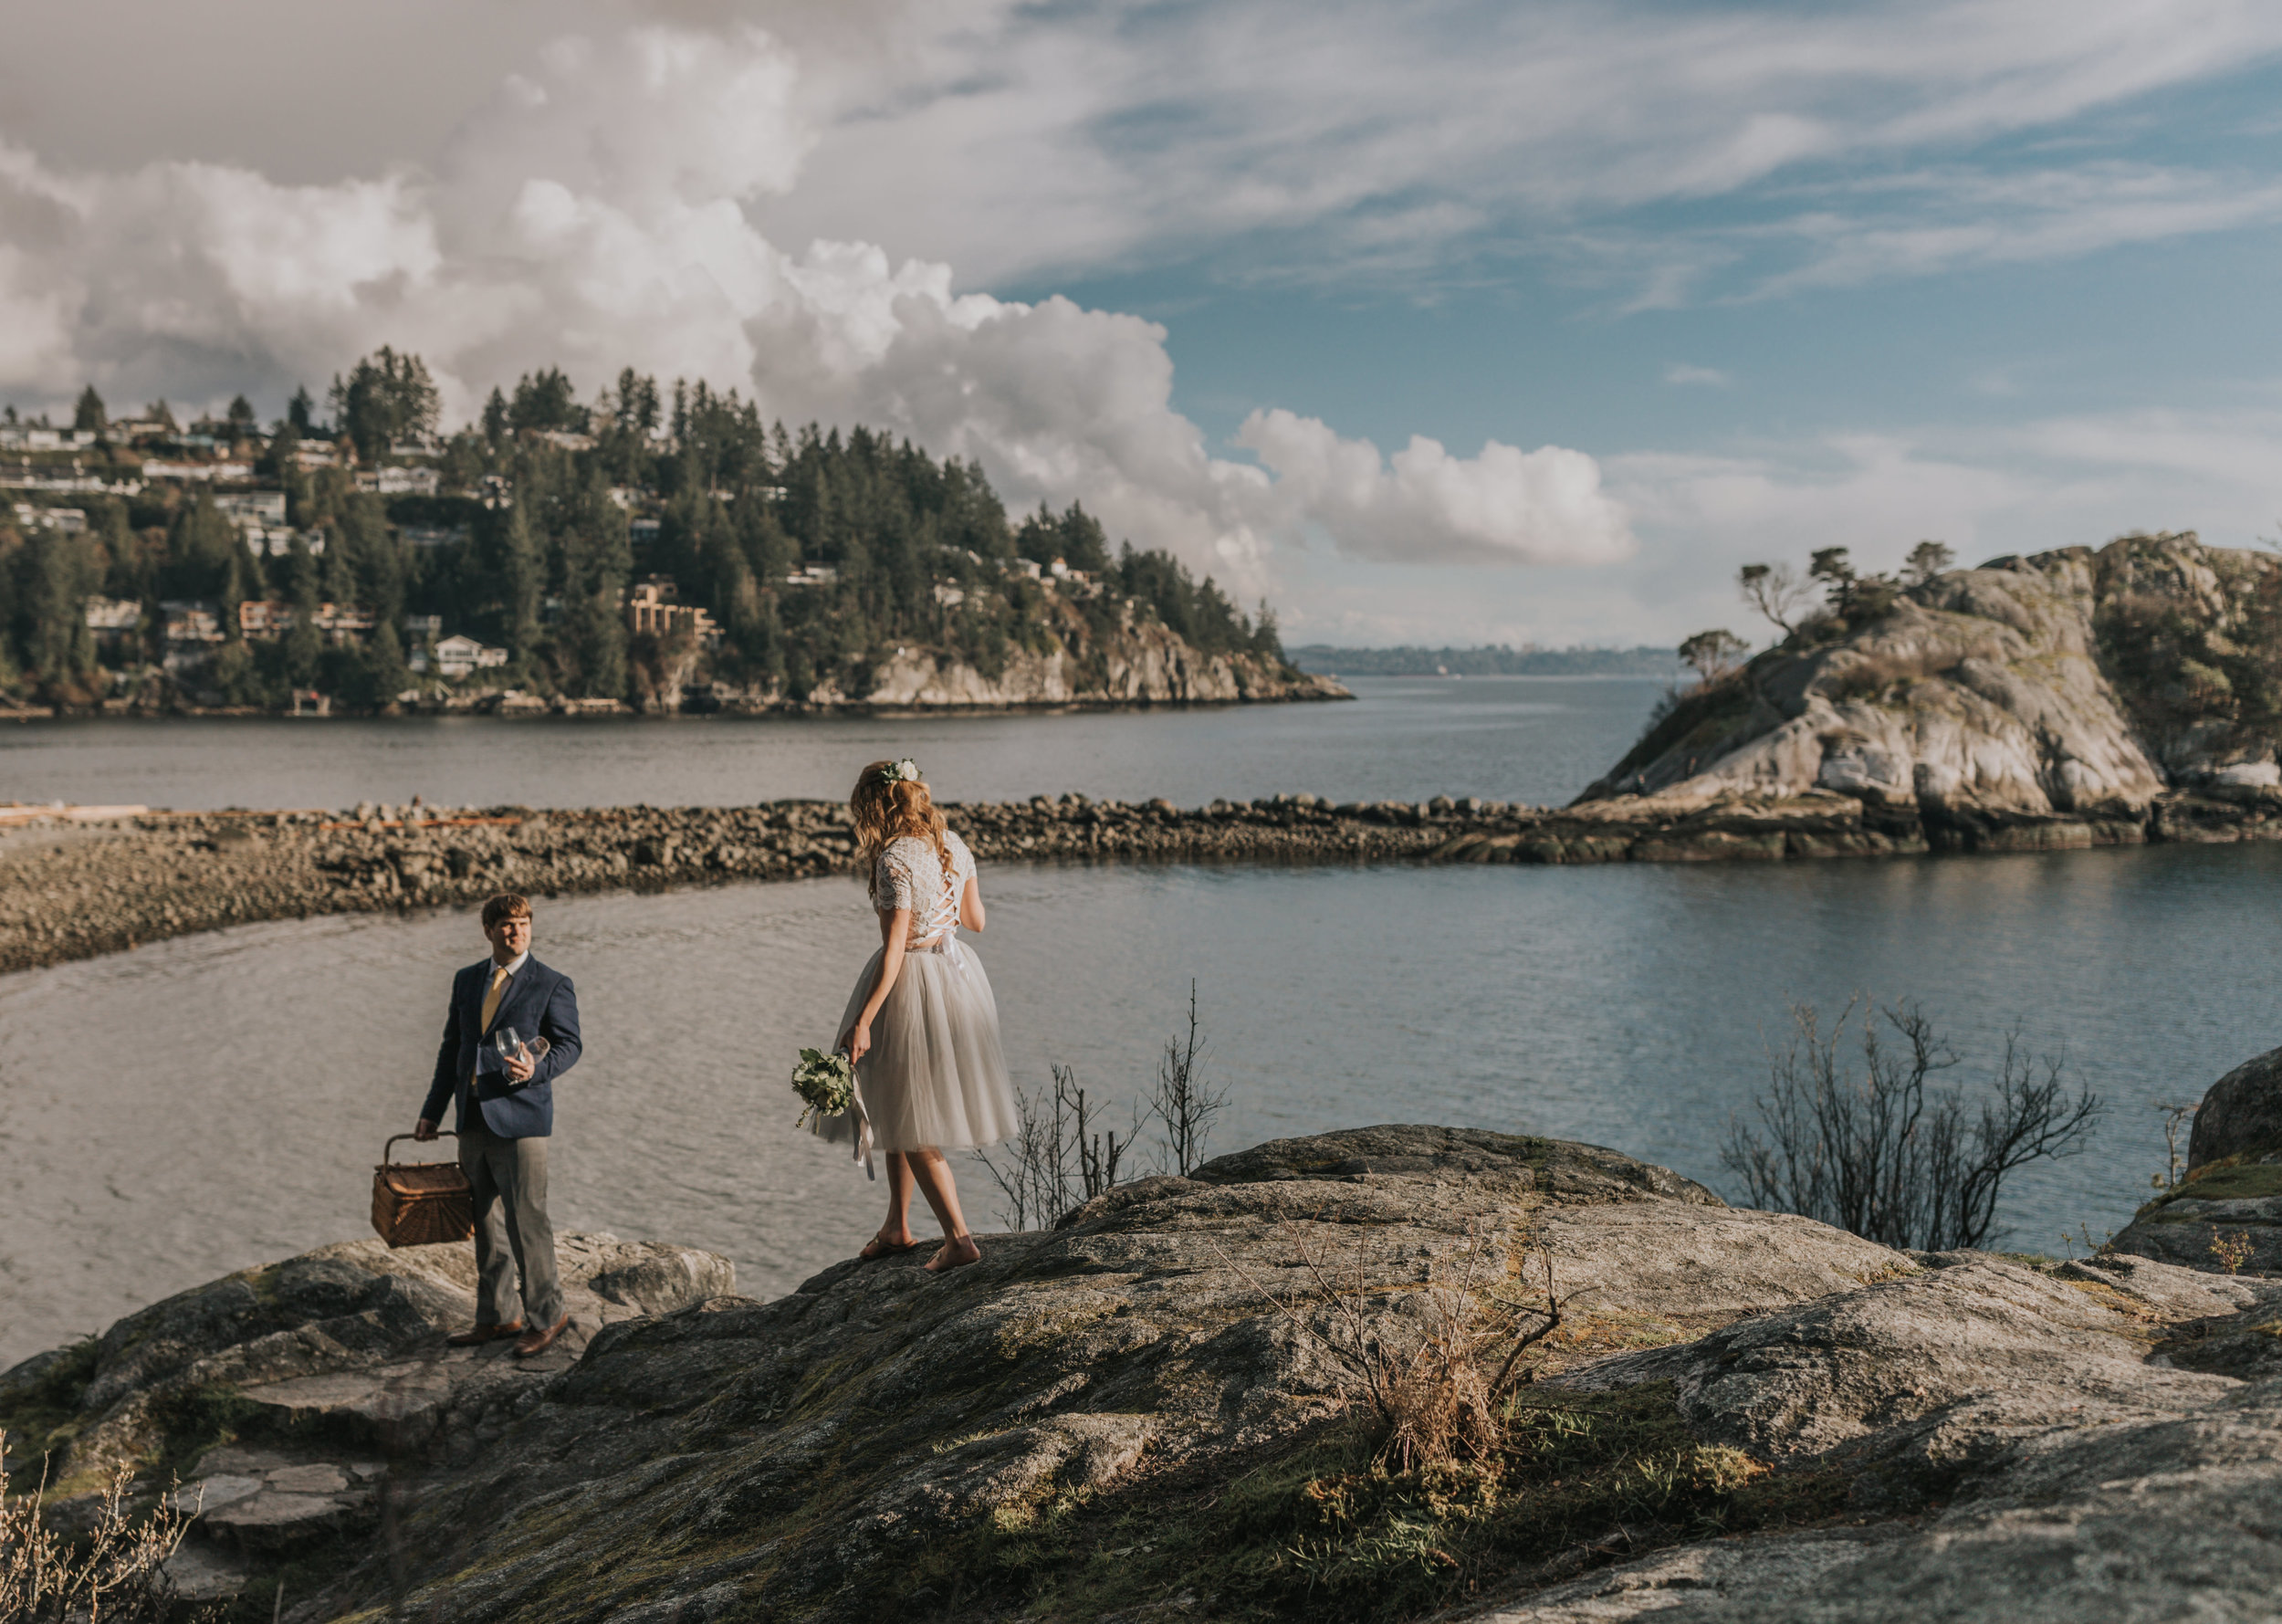 Whytecliff Park Engagement Photos - Vancouver Wedding Photographer - Jennifer Picard Photography045.JPG